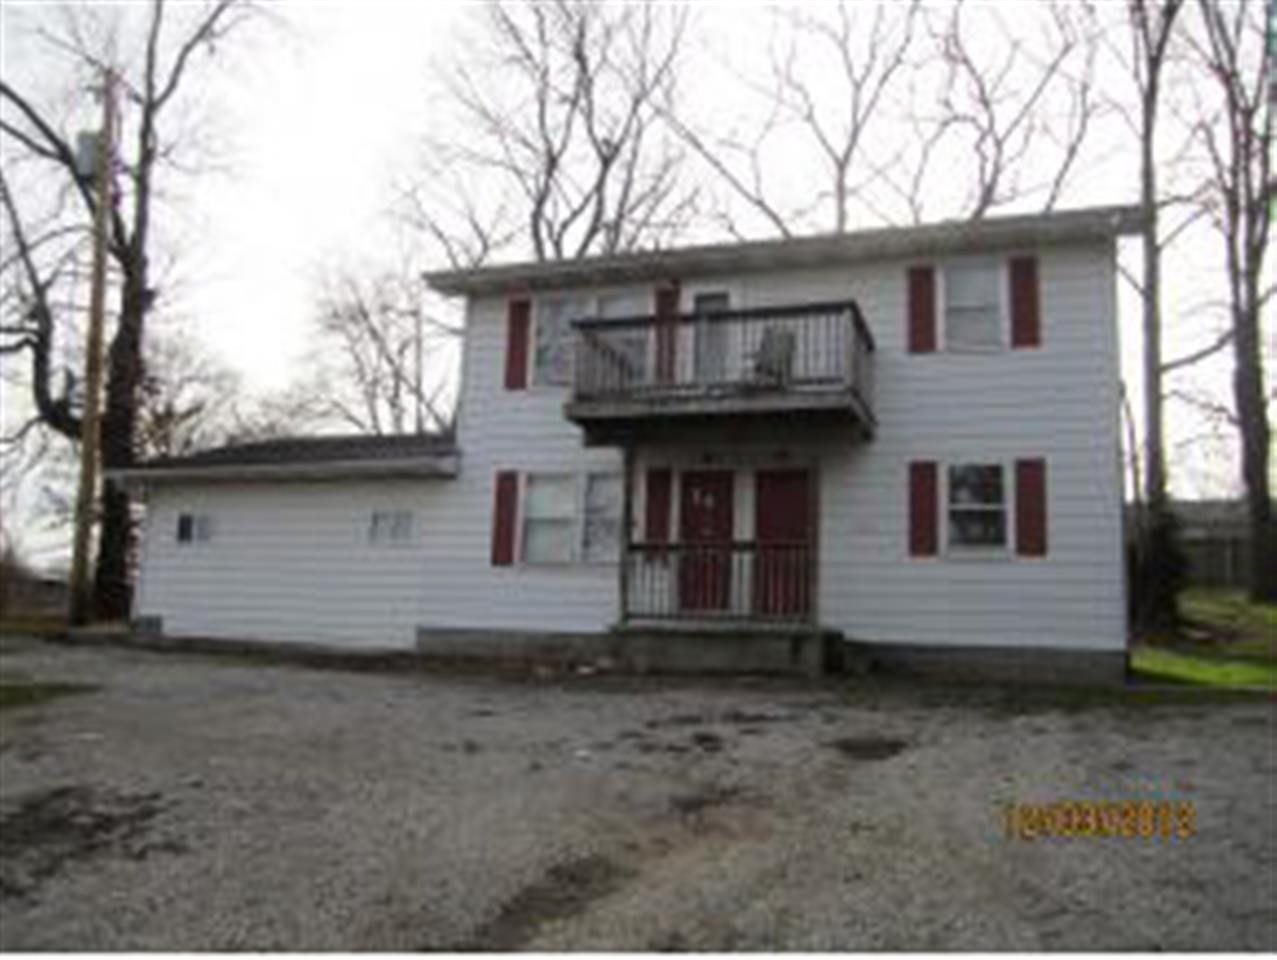 Rental Homes for Rent, ListingId:27286240, location: 713 W Association St Ellettsville 47429